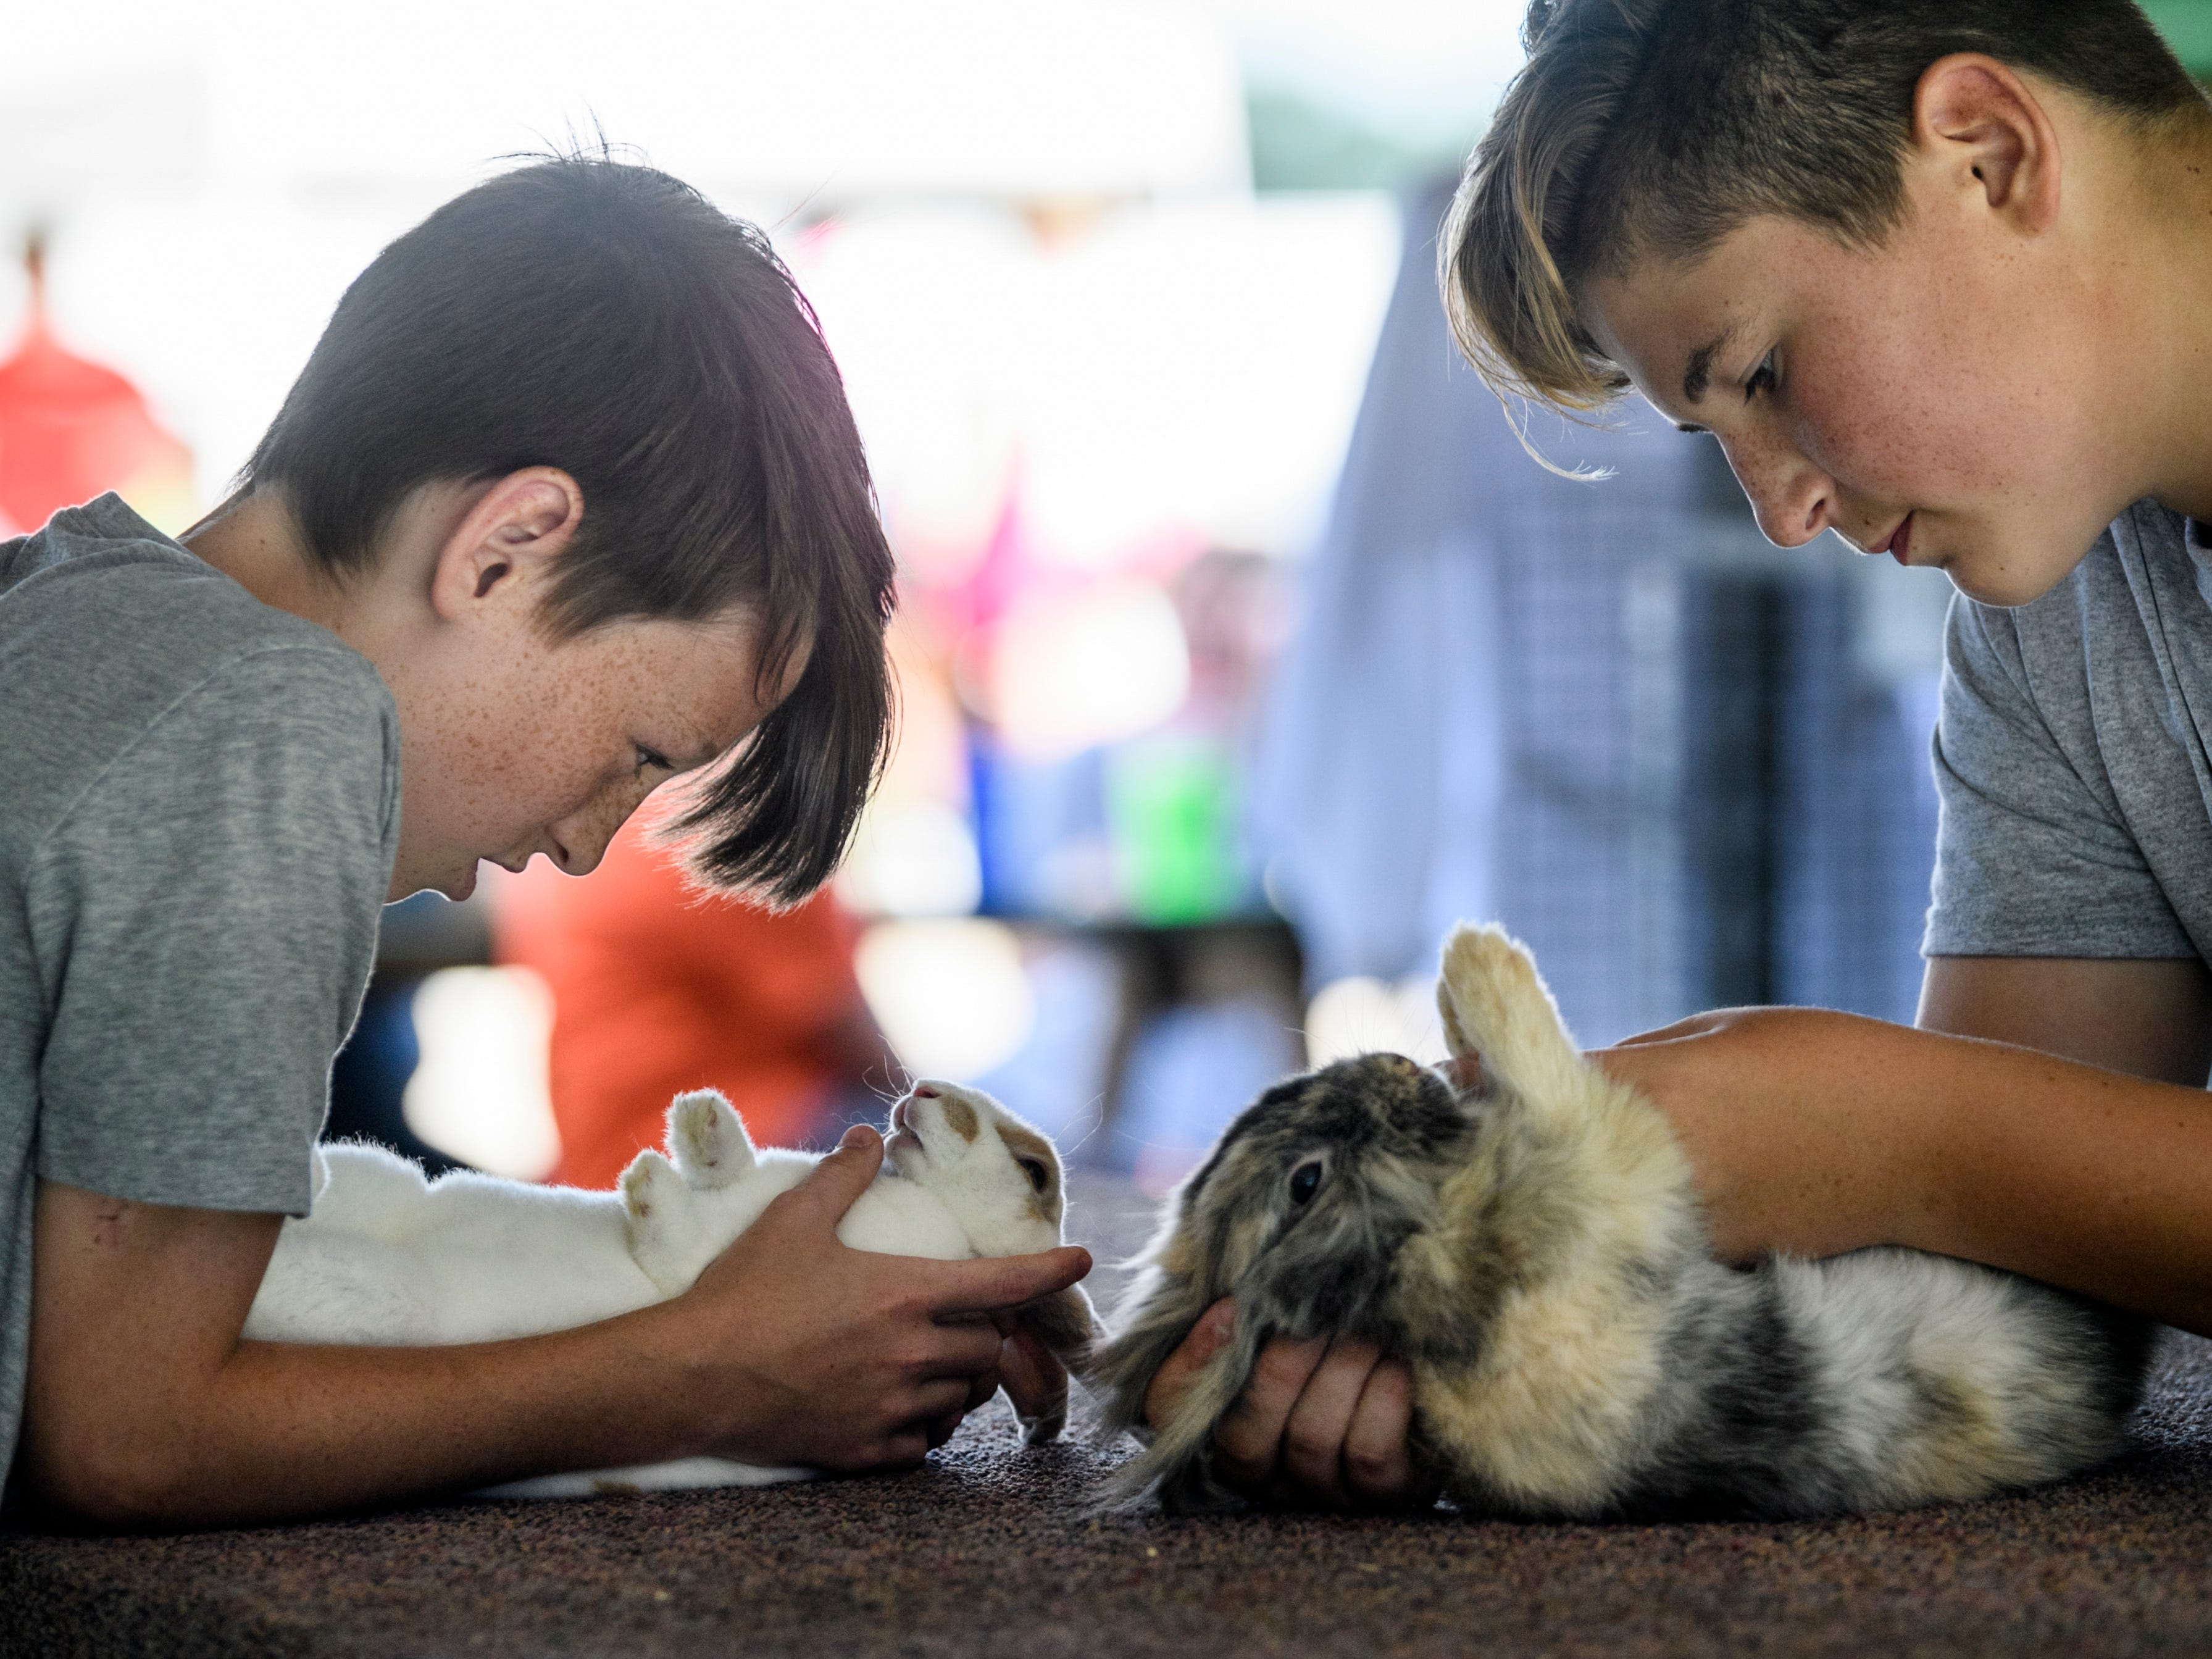 Russell Heim, left, and Jordyn Rhule, right, discuss the upcoming Rabbit Showmanship competition as they inspect their rabbits Teeny, left, and Ace, right, at the Warrick County Fair in Boonville, Ind., Wednesday, July 18, 2018.